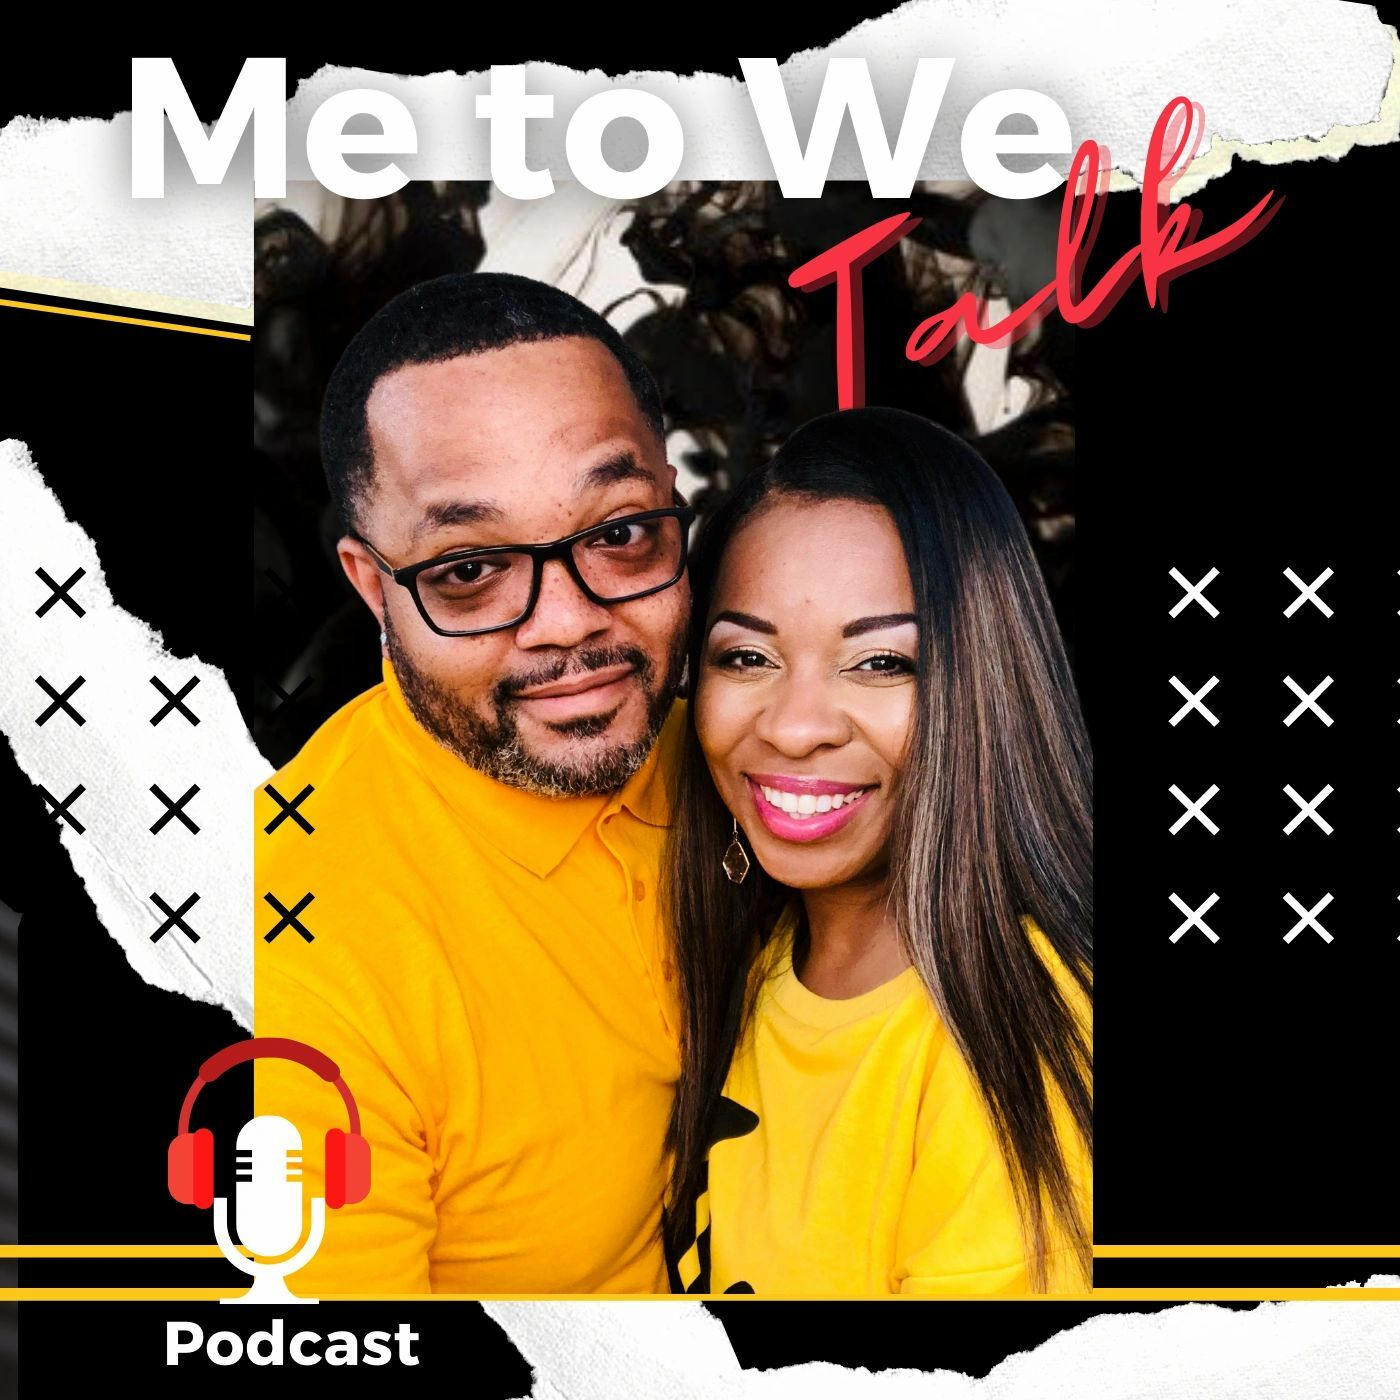 Episode 64: Marriage Intruders Part 2 of 2